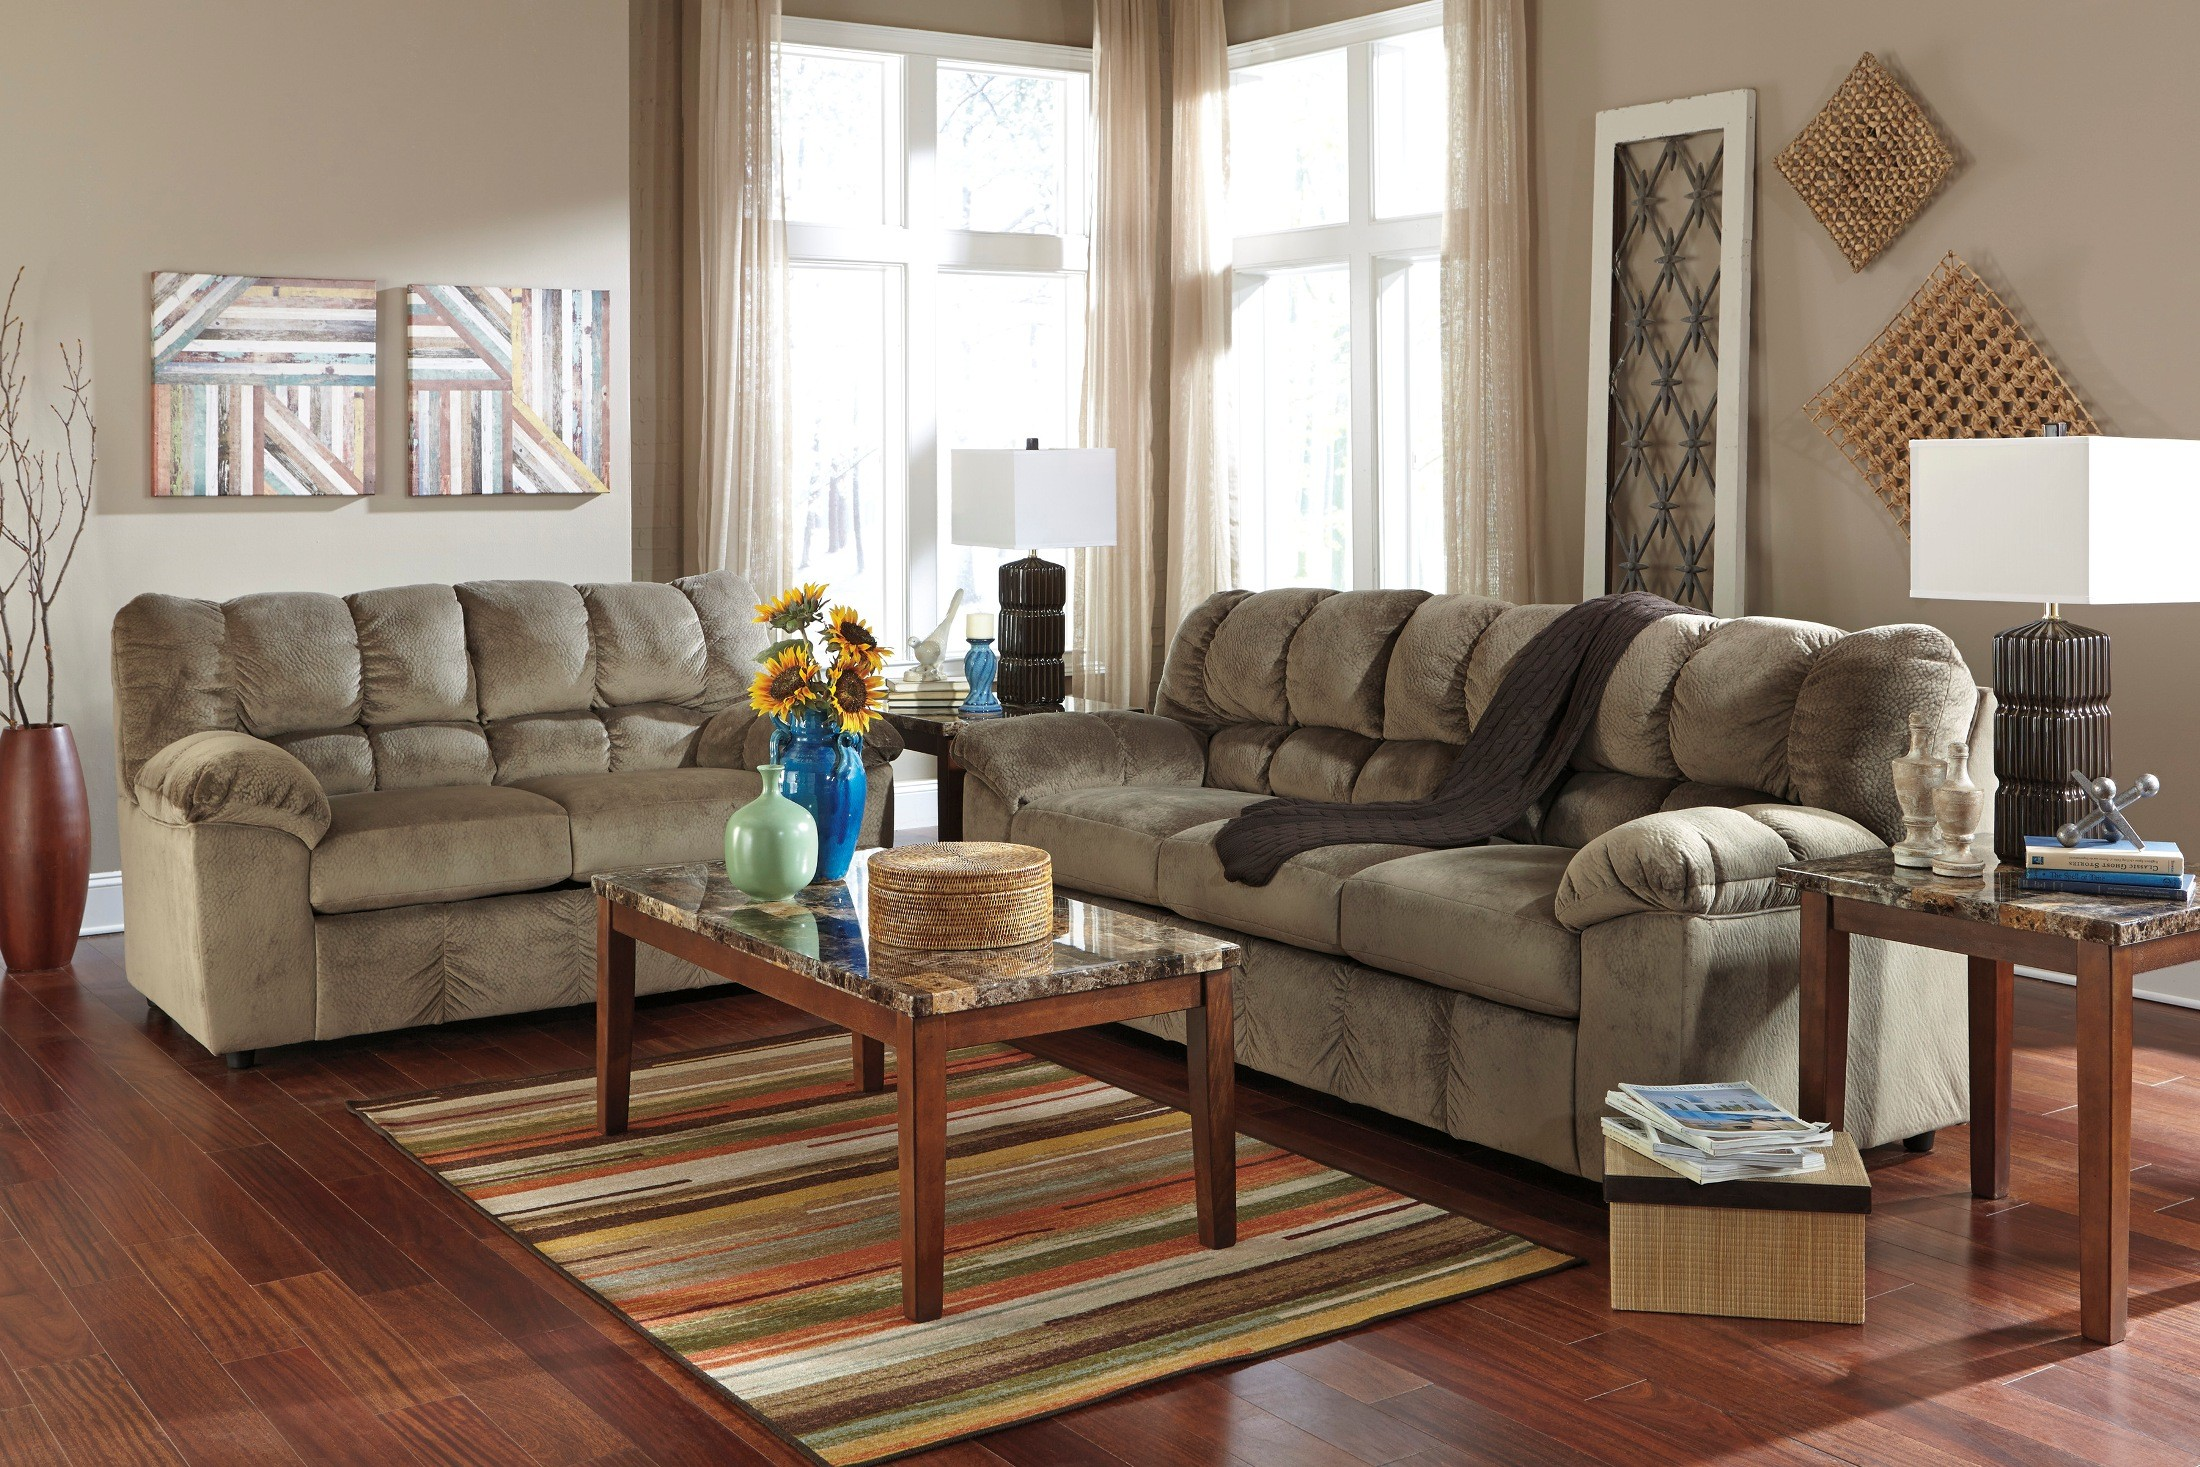 Julson Dune Living Room Set from Ashley 266013835  Coleman Furniture